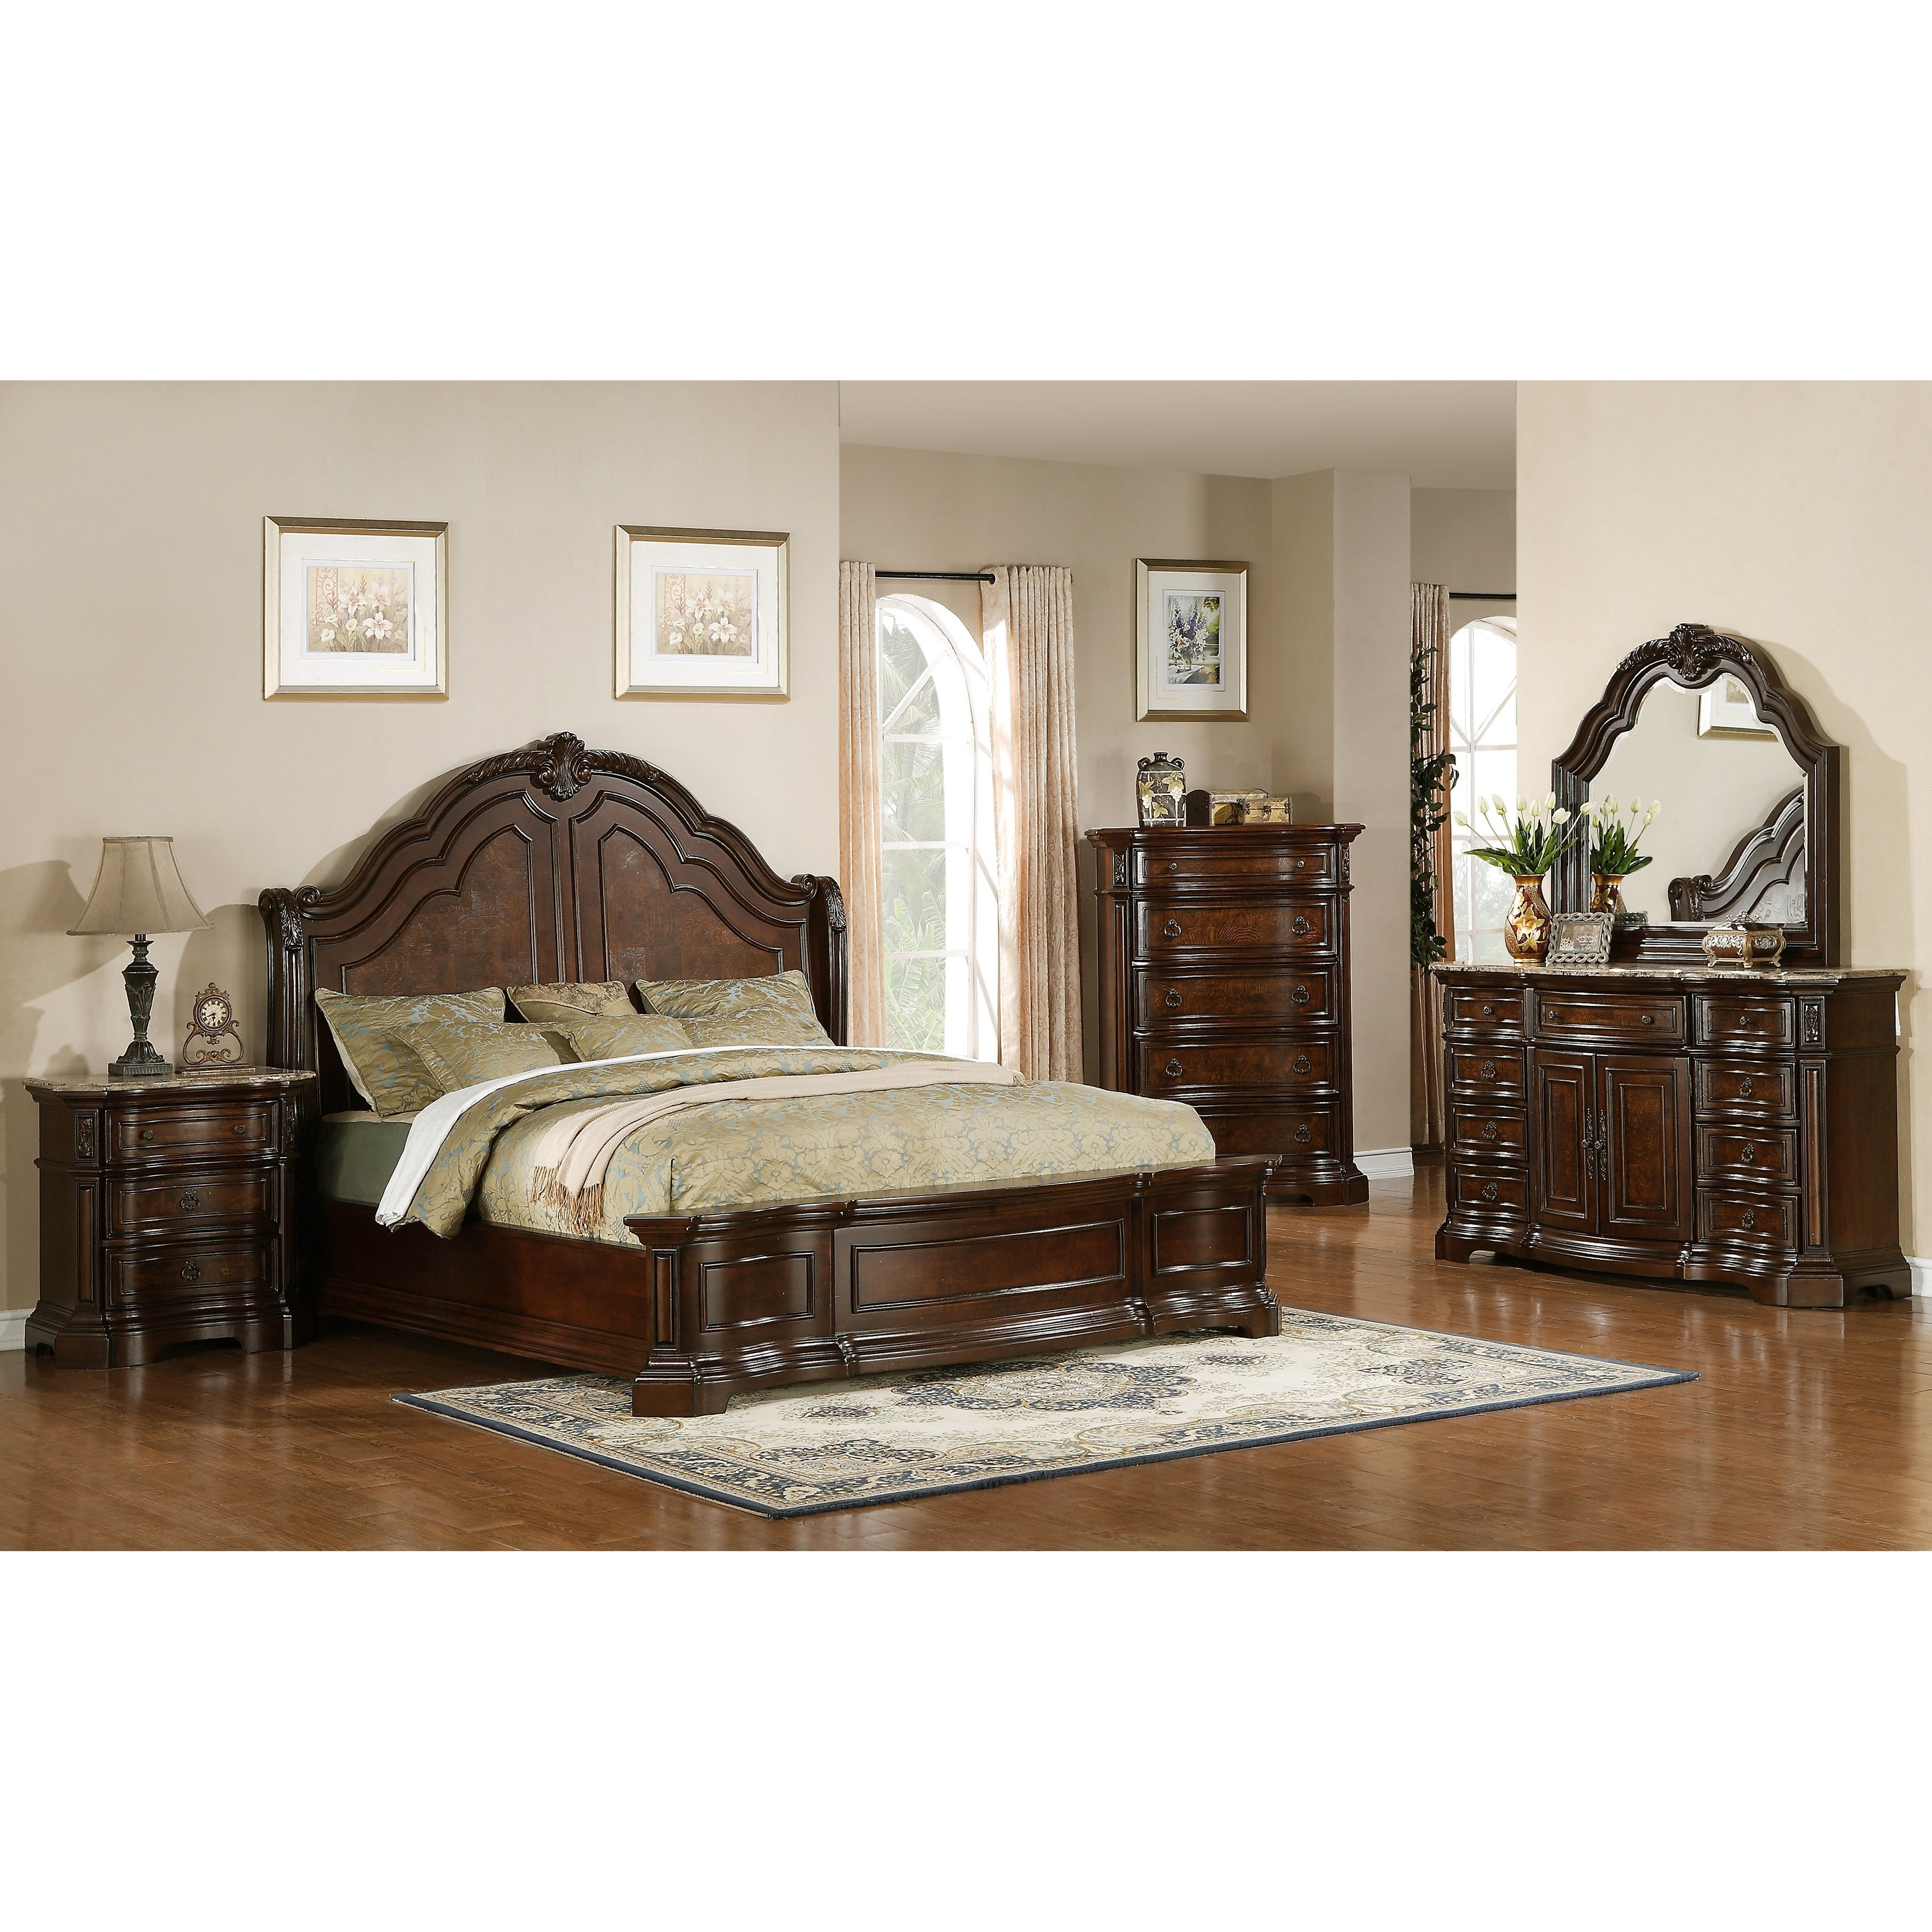 Shop Paris Elegant Brown 5 Piece Queen Bedroom Set Overstock 28067554